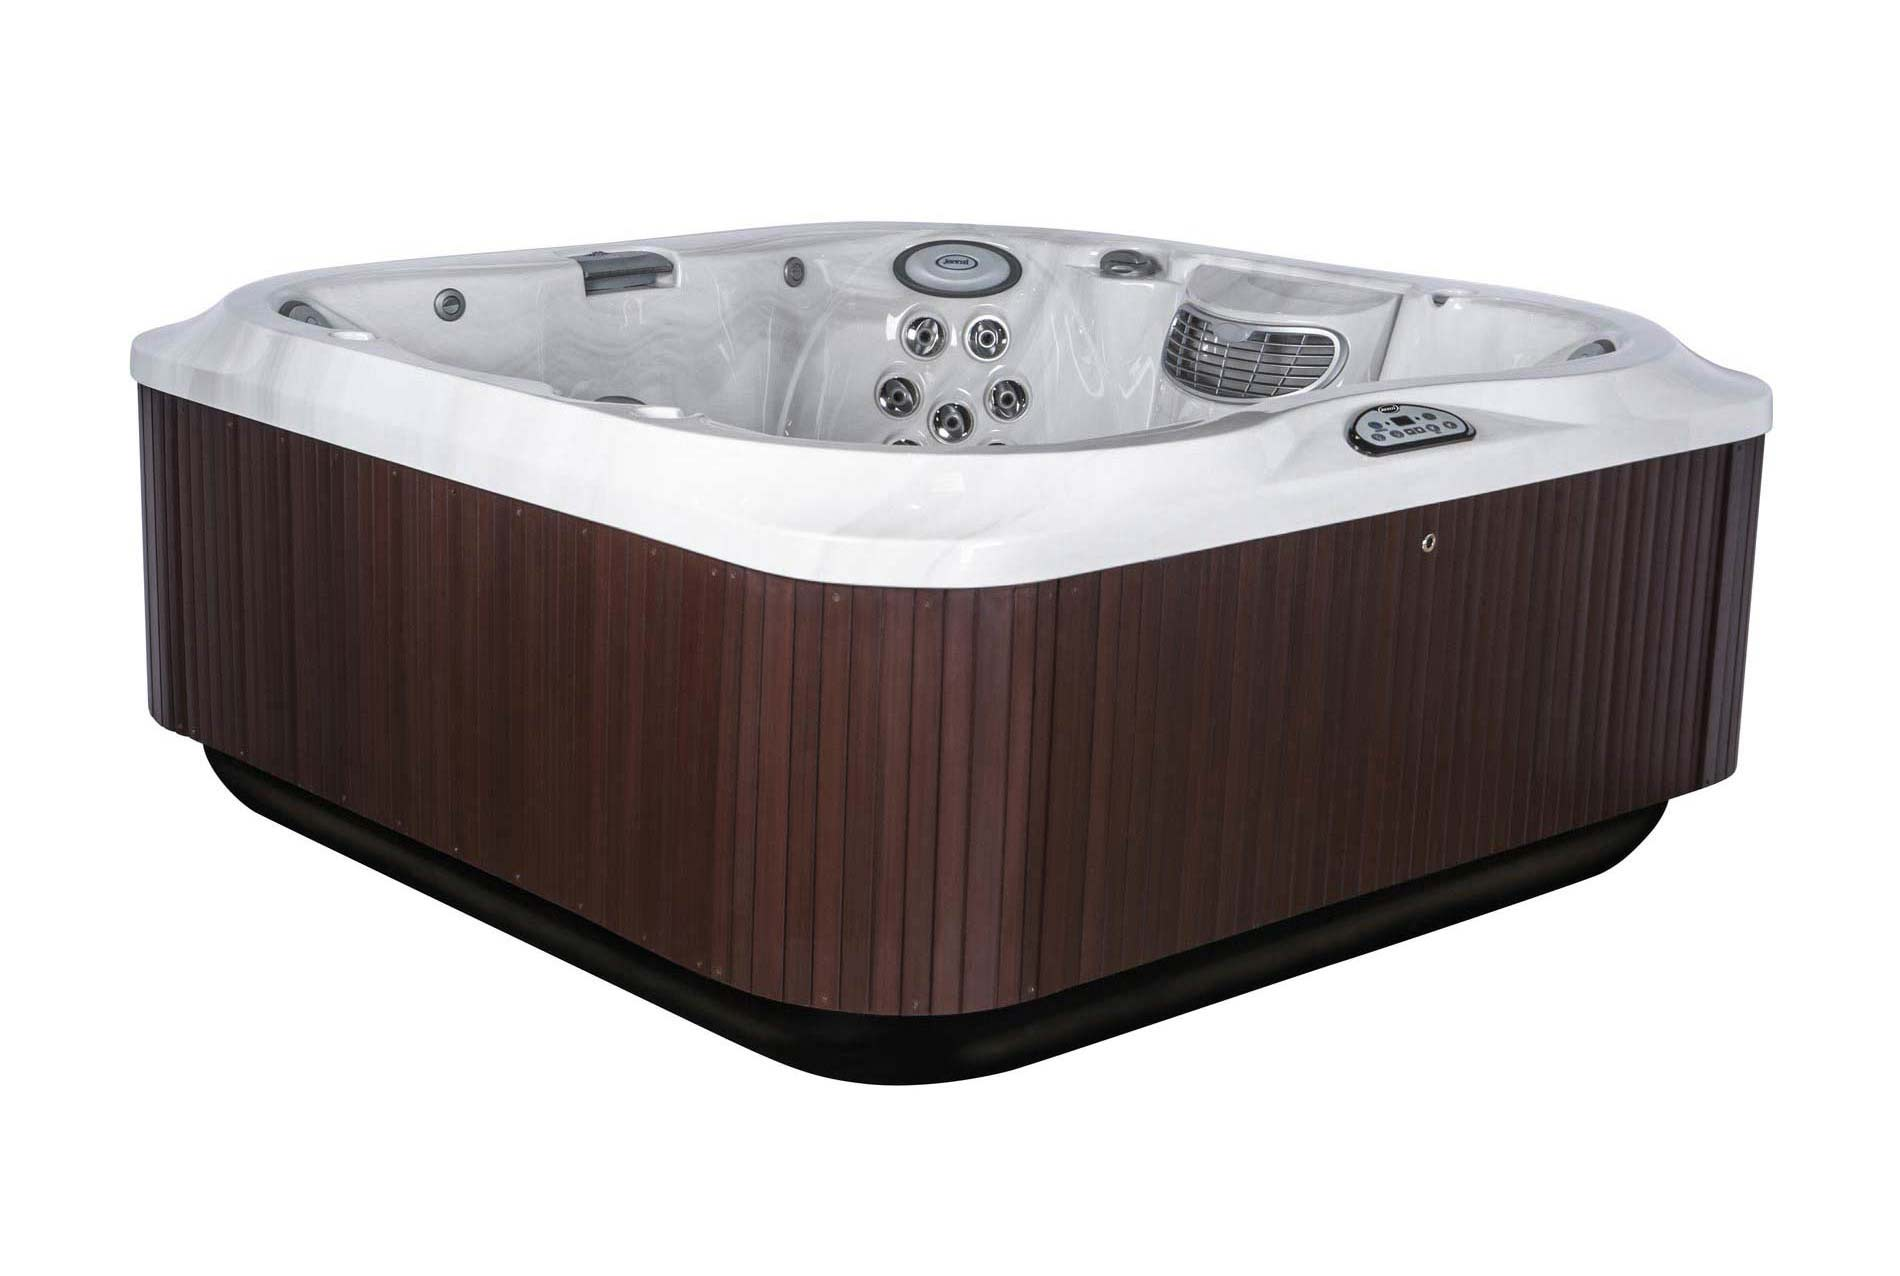 J-345 6 Person Jacuzzi Hot Tub in New Hampshire